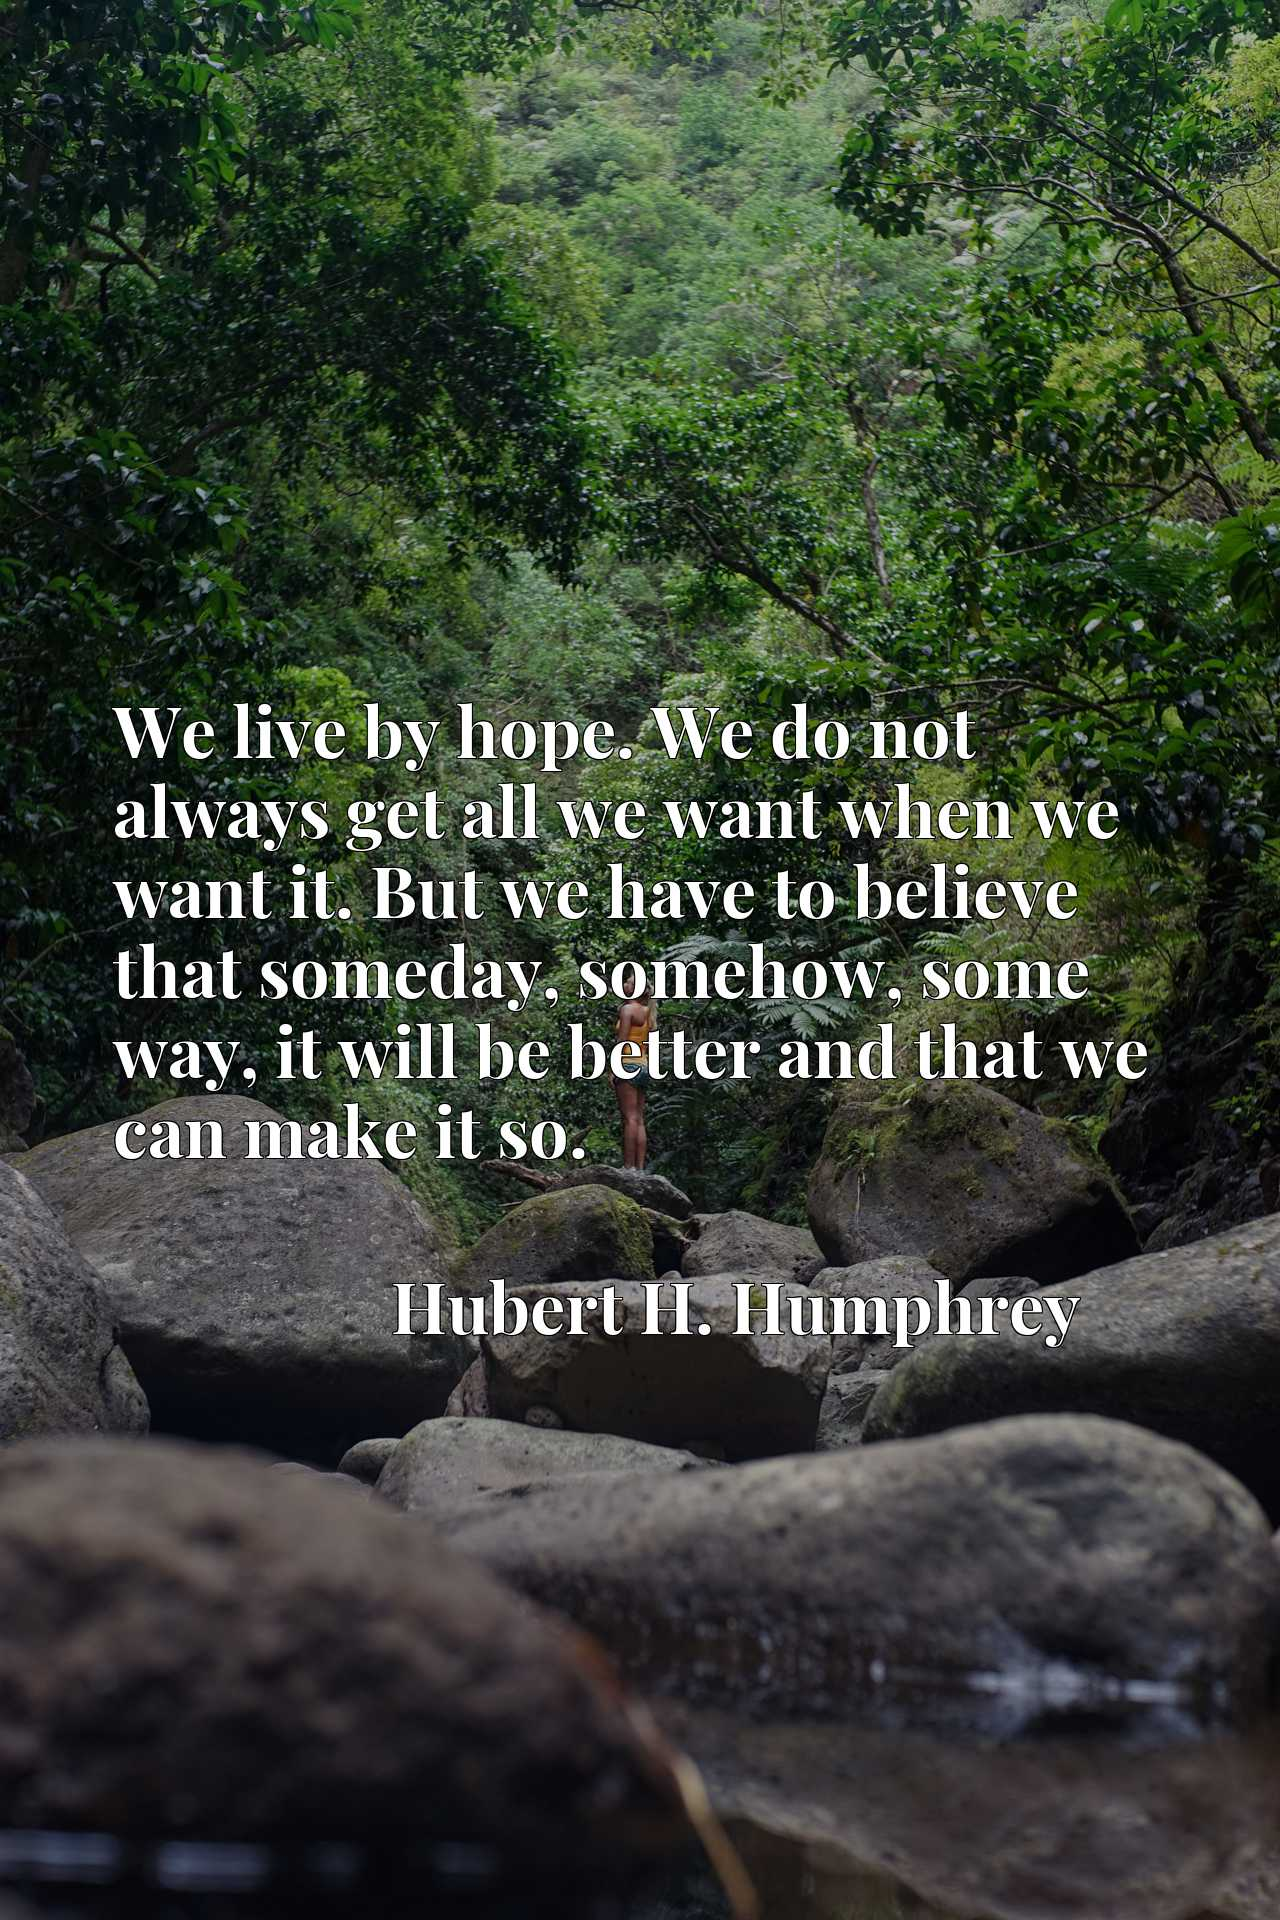 We live by hope. We do not always get all we want when we want it. But we have to believe that someday, somehow, some way, it will be better and that we can make it so.